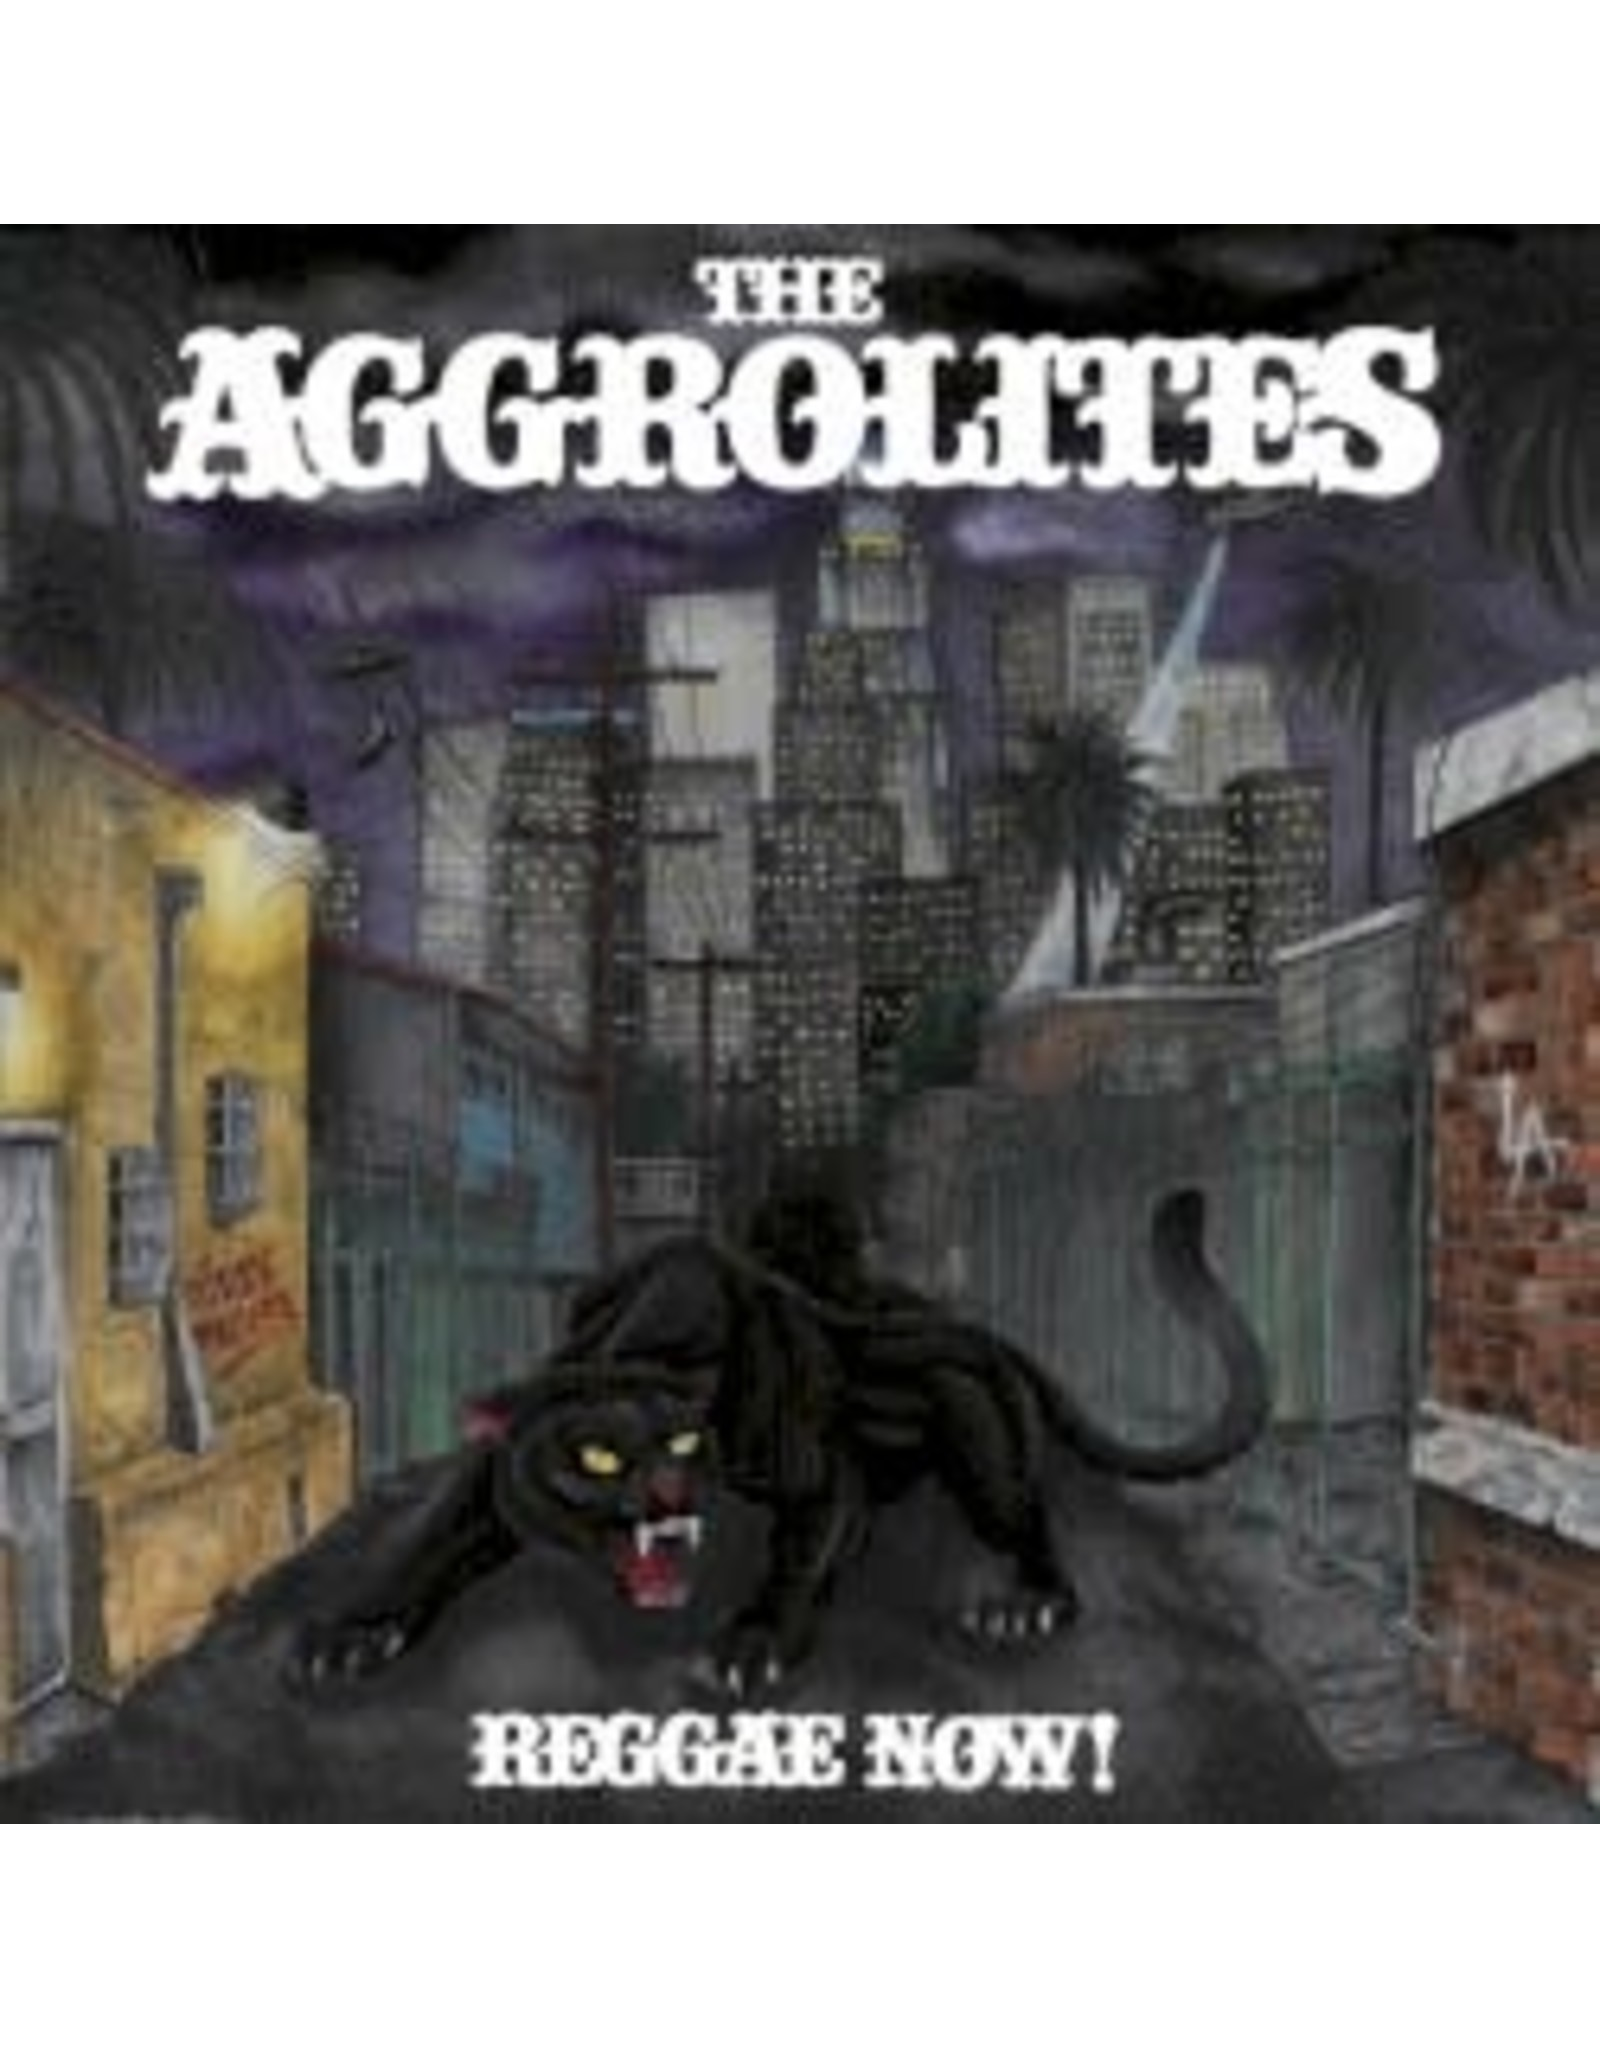 Aggrolites - Reggae Now LP